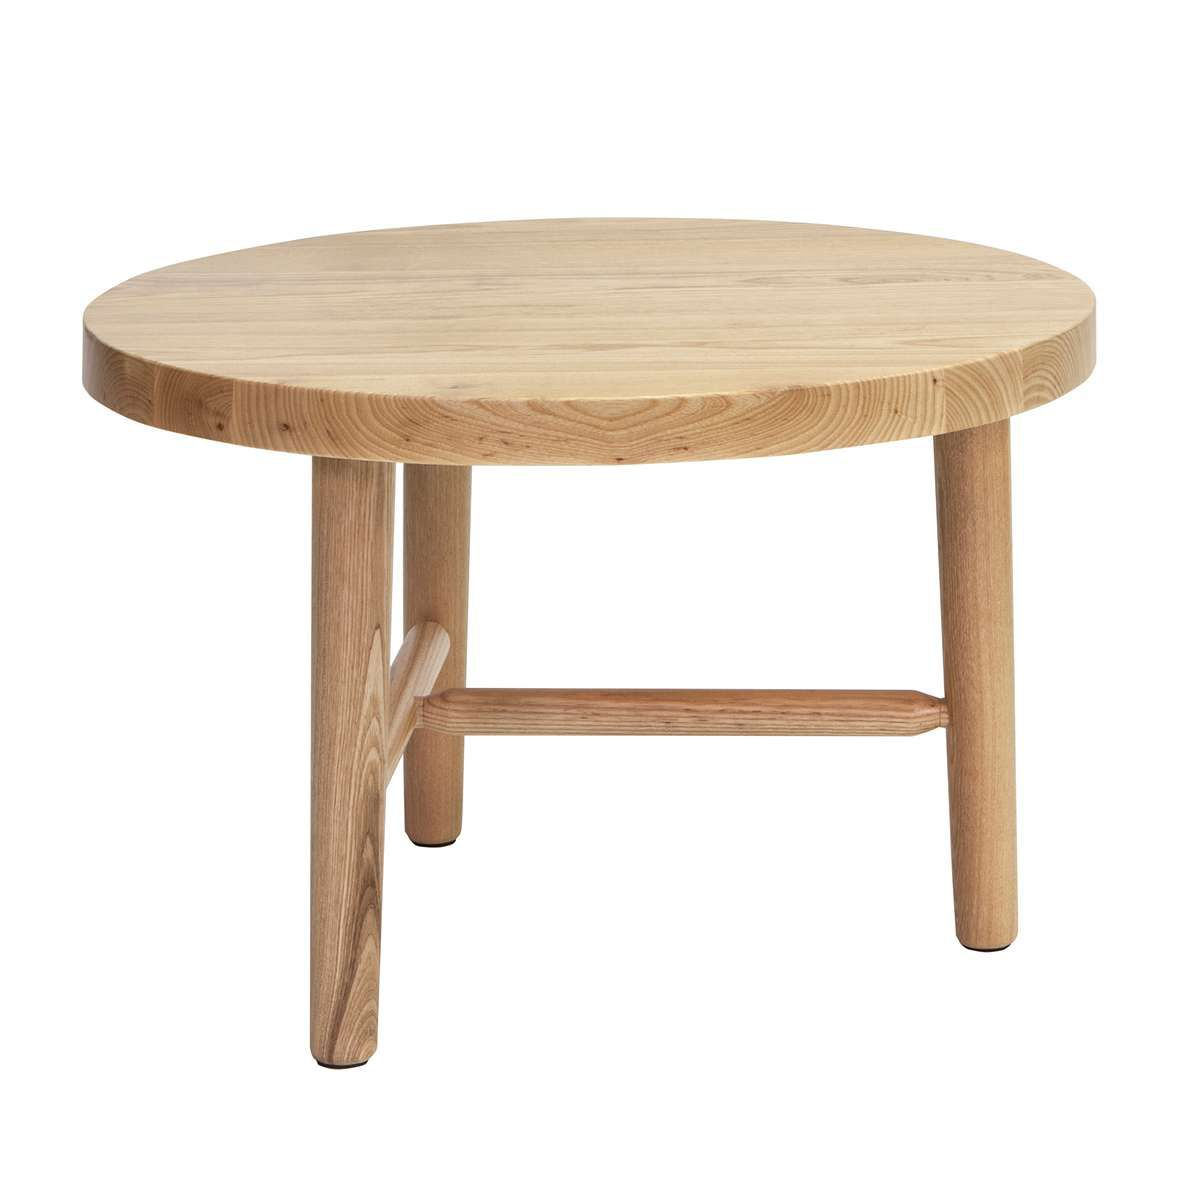 Peachy 20 Small Round Coffee Tables To Maximize A Tiny Space Cjindustries Chair Design For Home Cjindustriesco